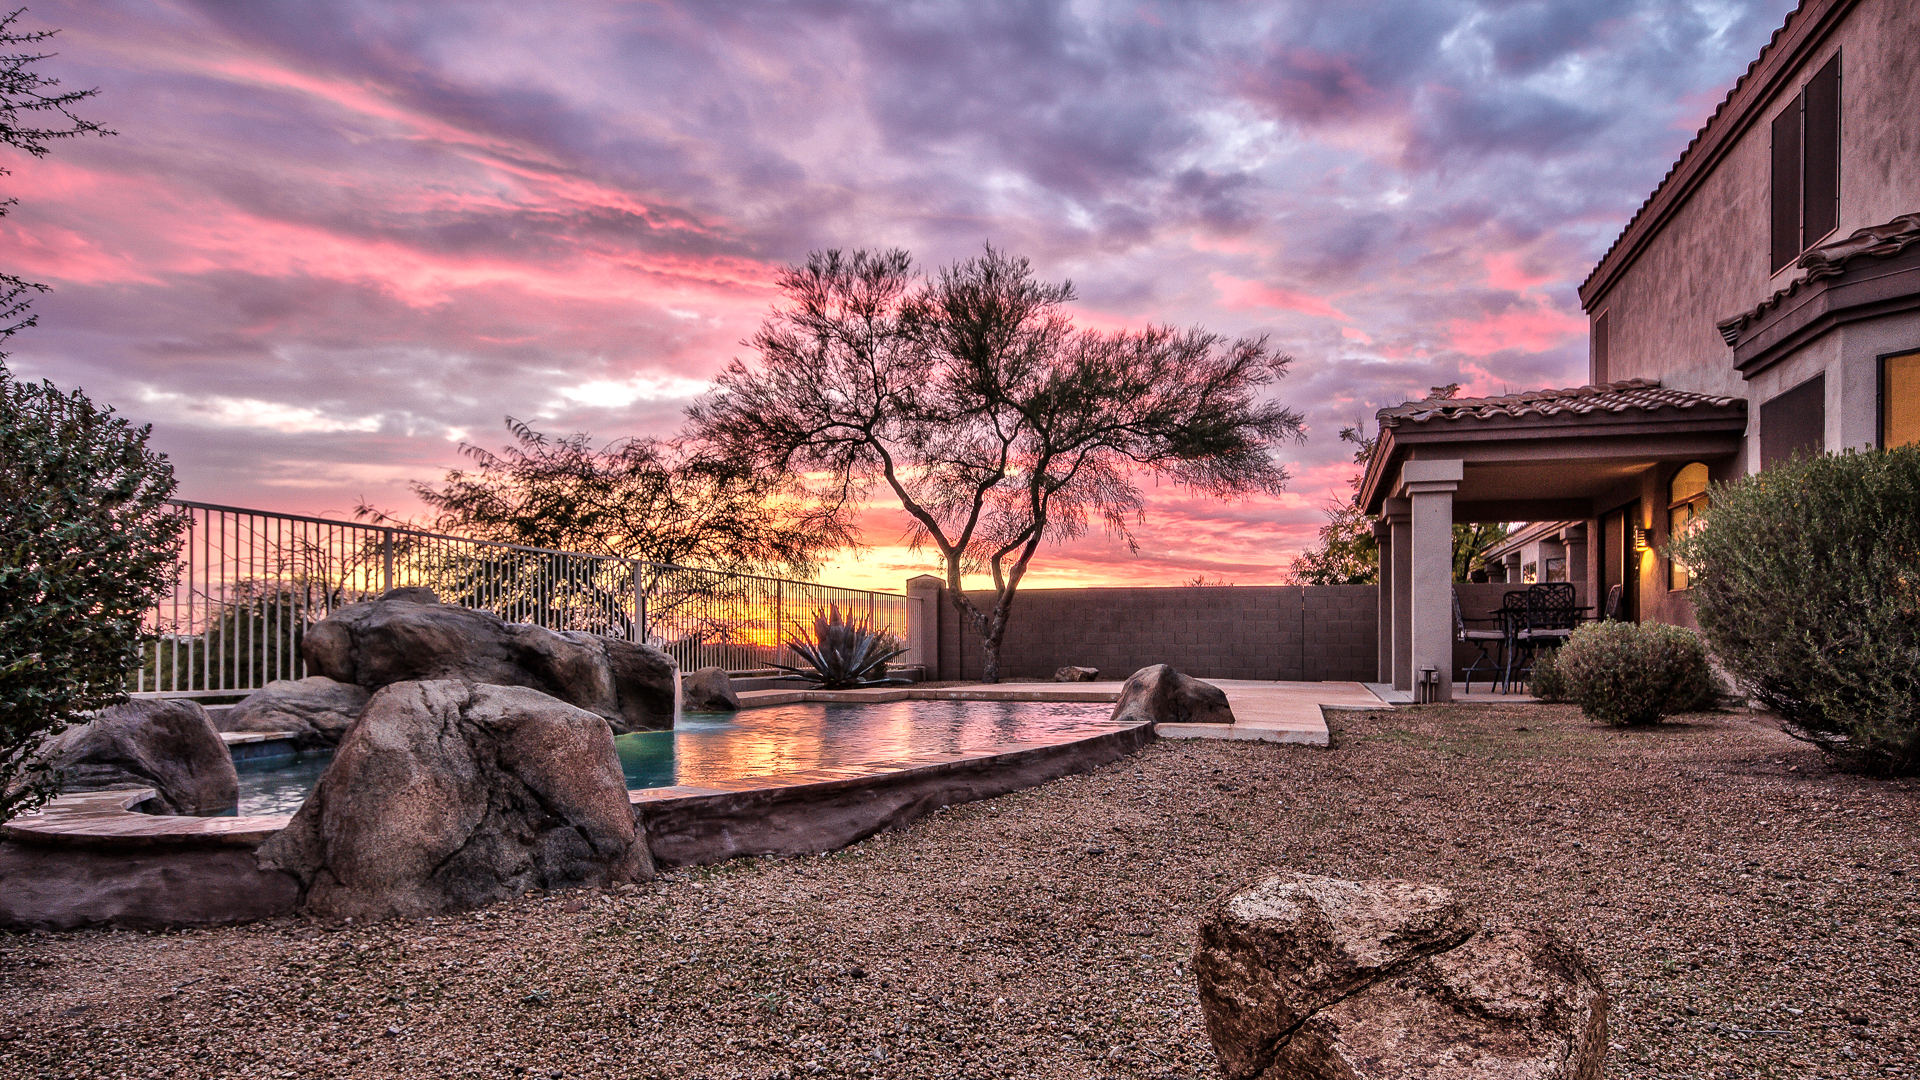 Spacious Scottsdale Home With Breathtaking Sunset Views For Sale 12217 E Lupine Ave